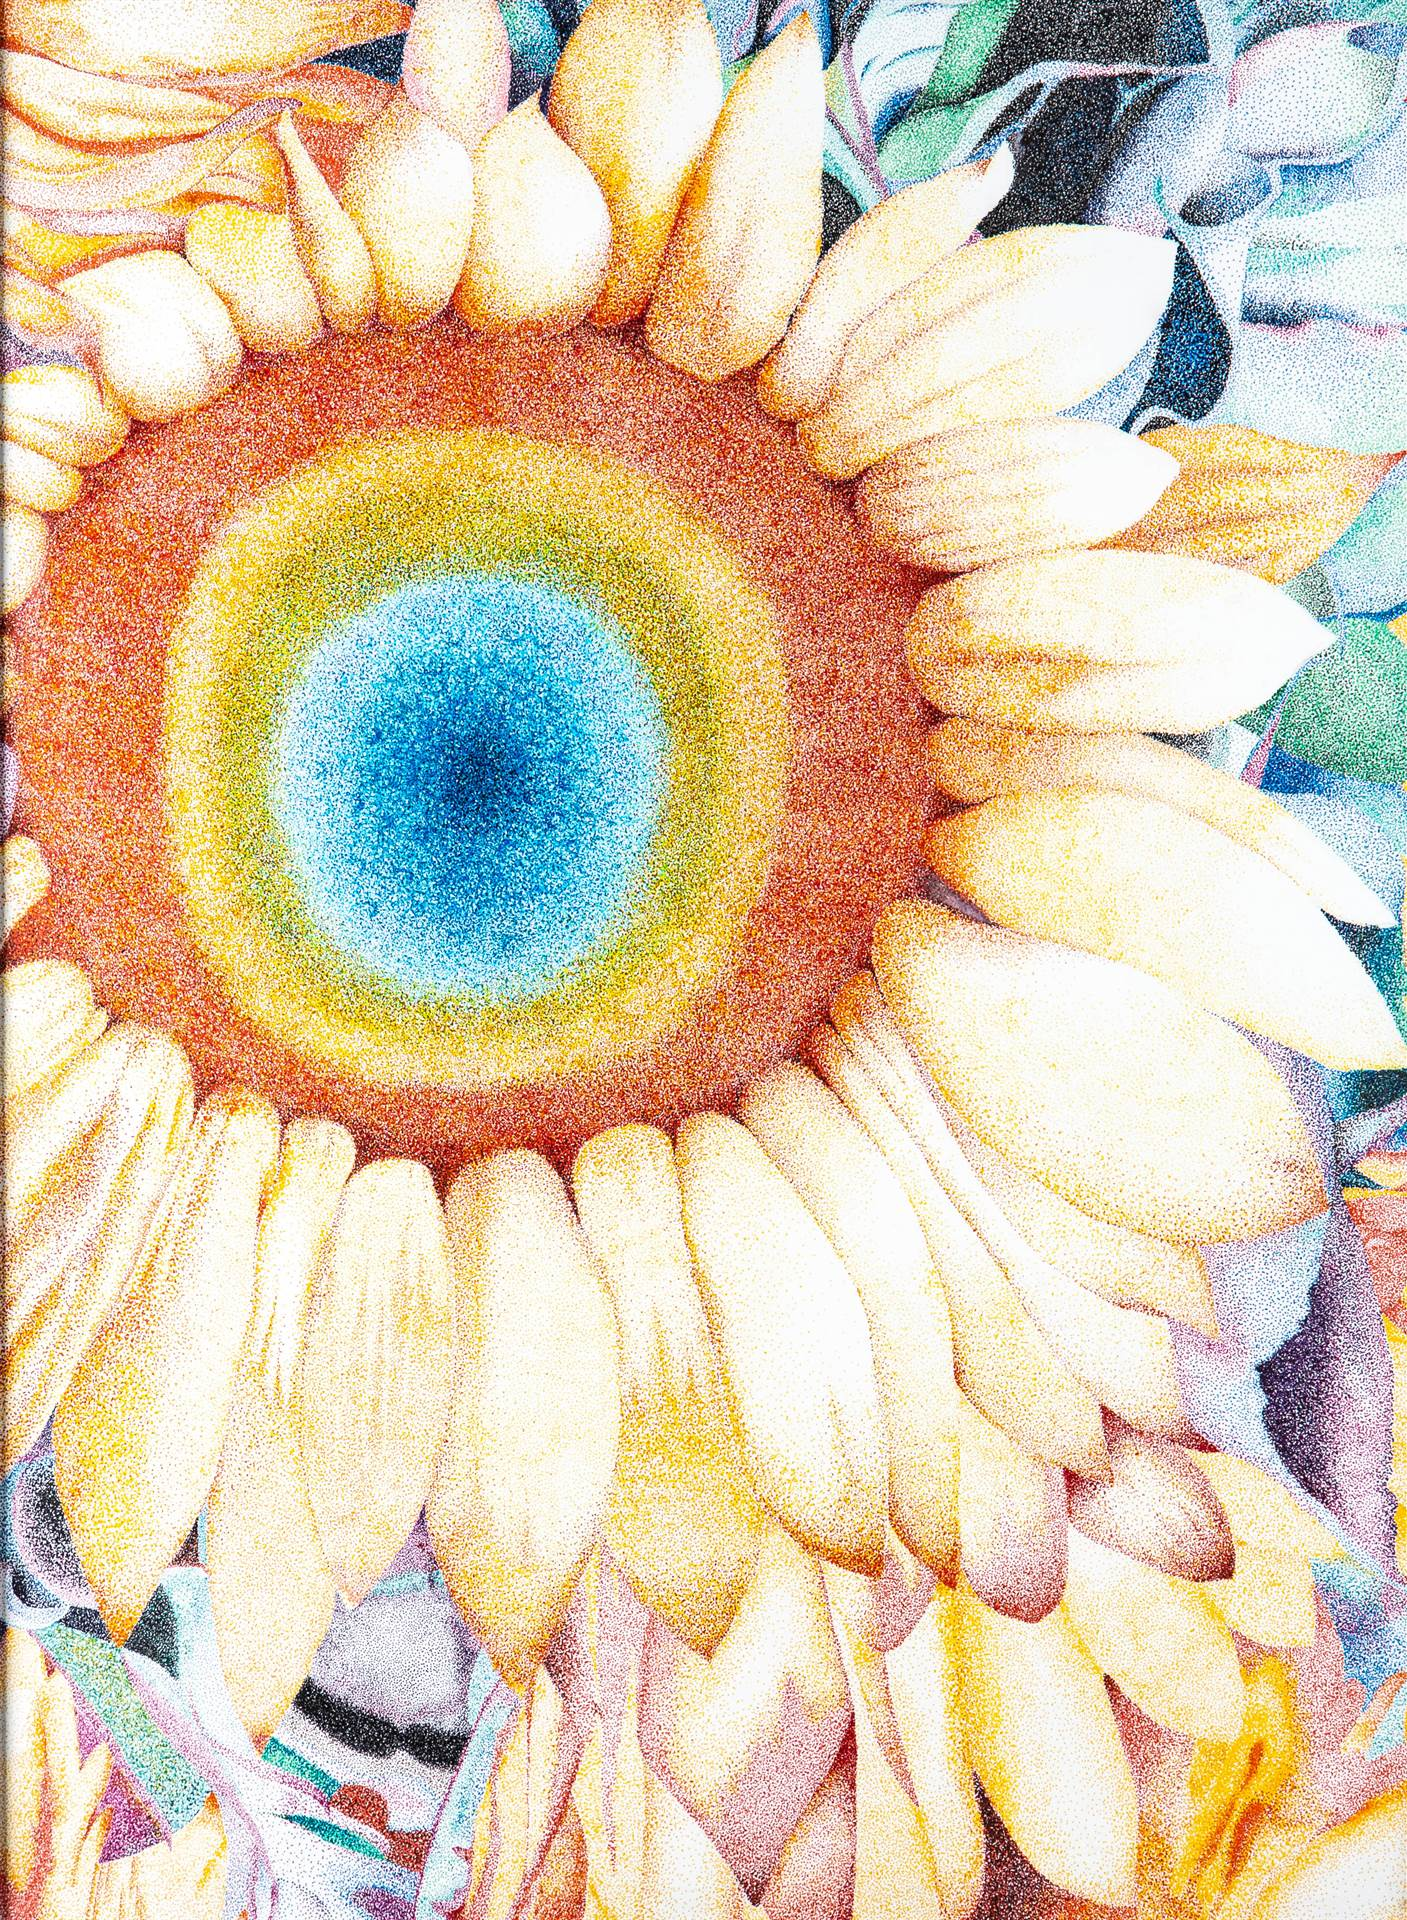 Drawing of Sunflower with rainbow middle